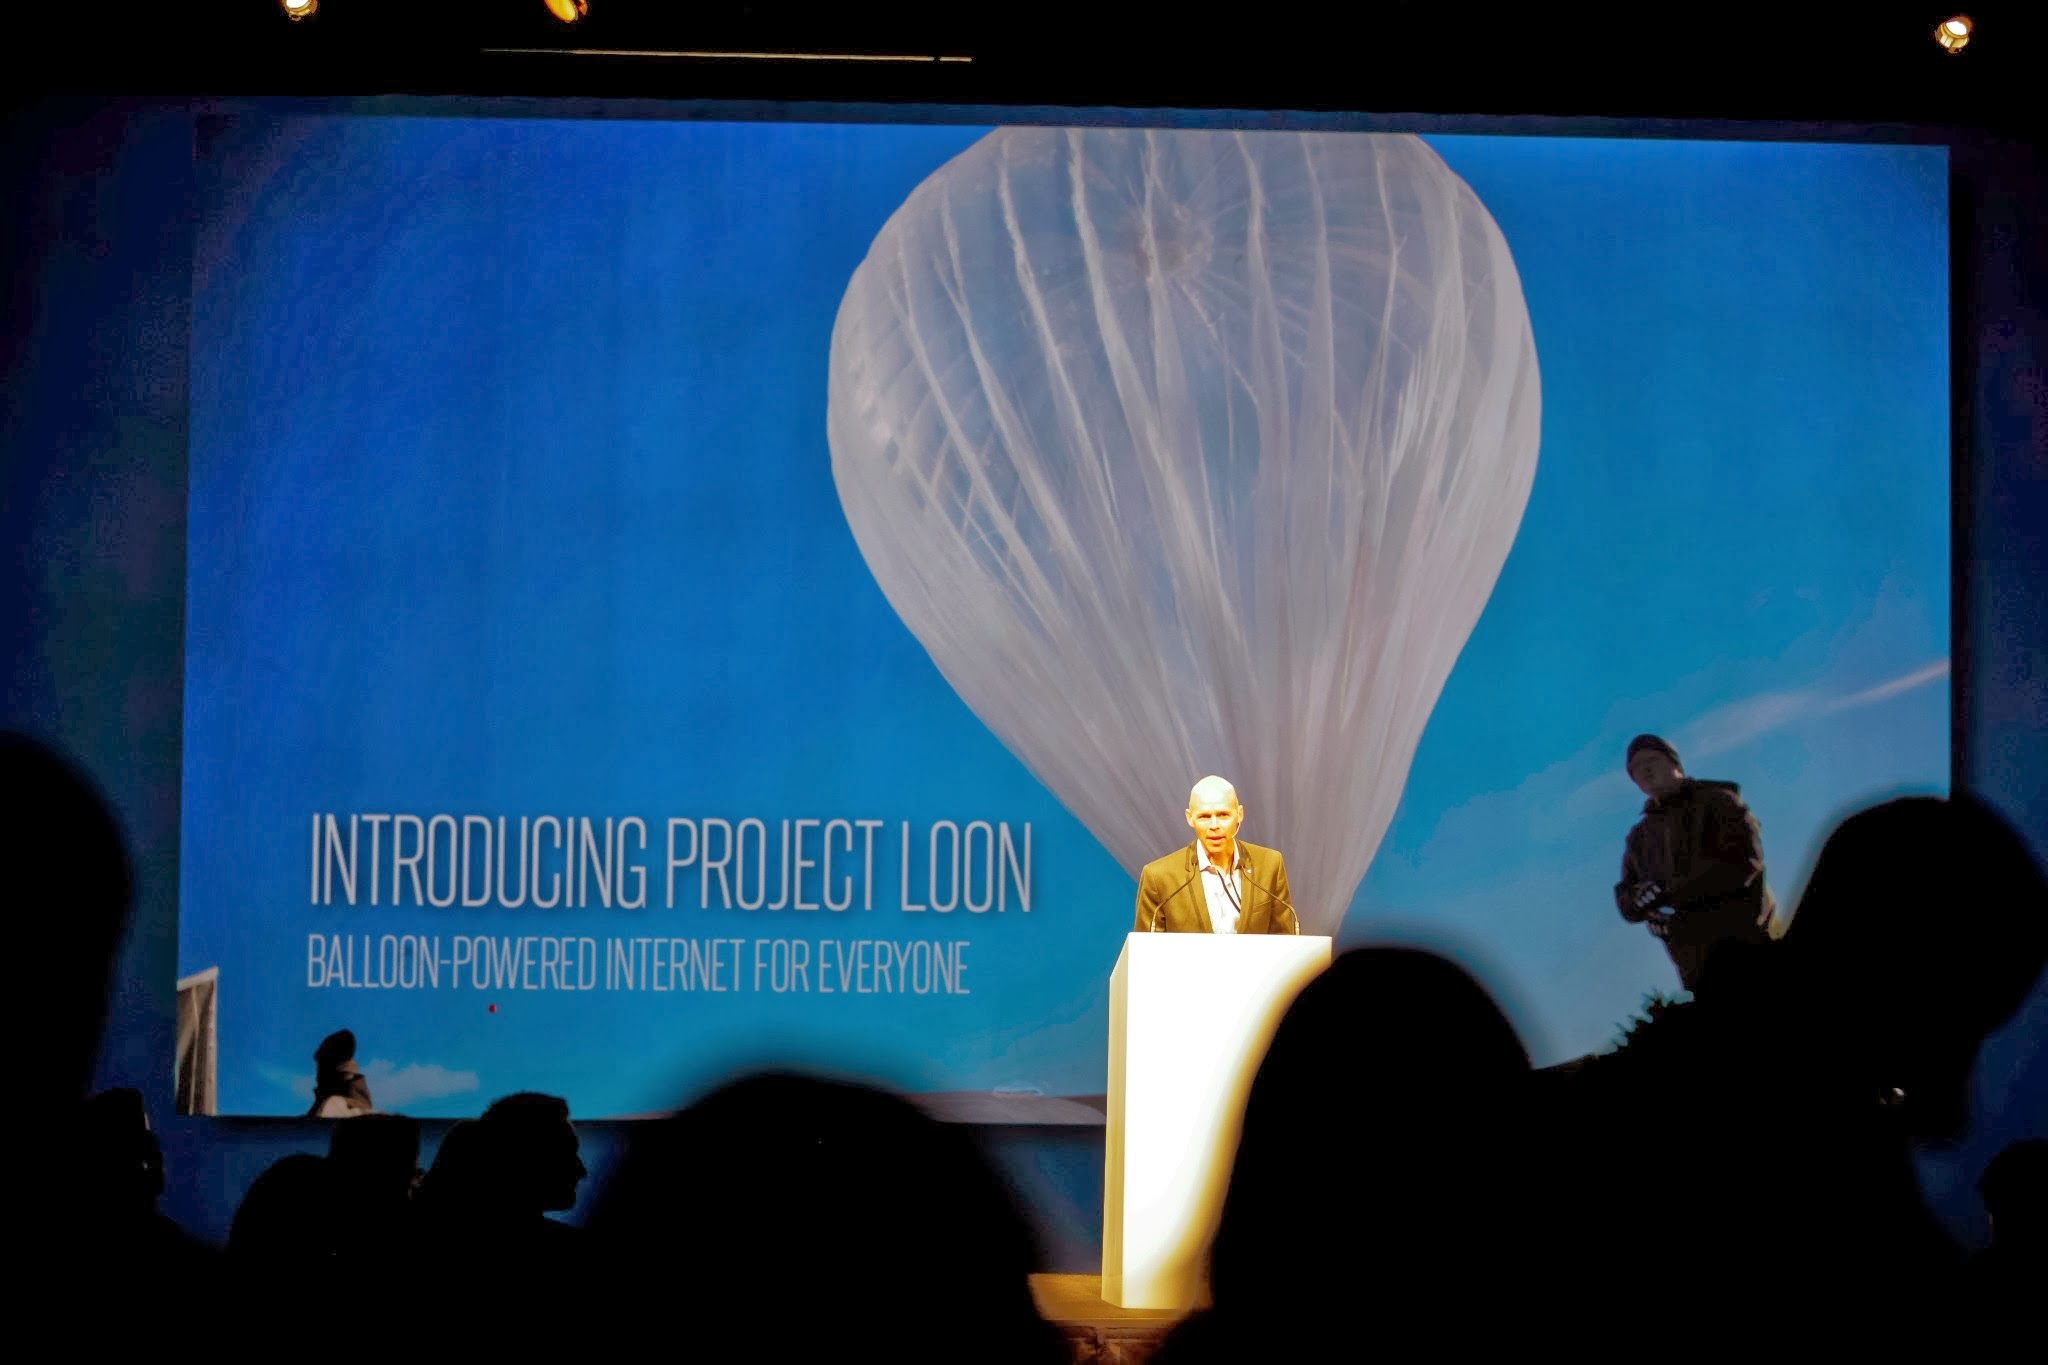 Google Wants New Spectrum for Drones and Internet Balloons